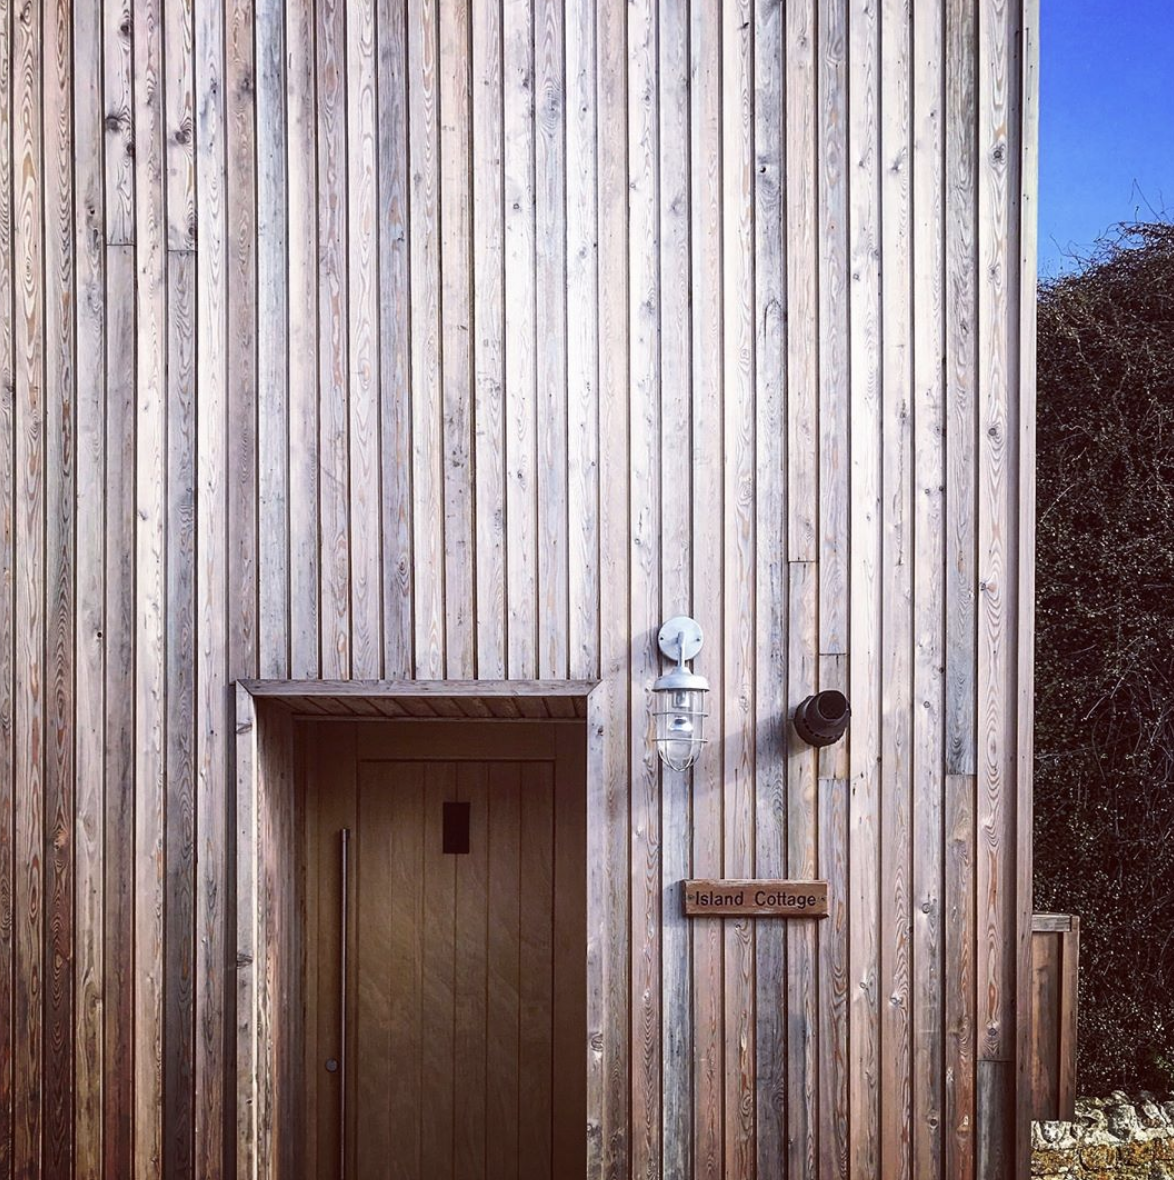 Paul Cashin Architects / Island Cottage, Sidlesham, West Sussex Nears Completion